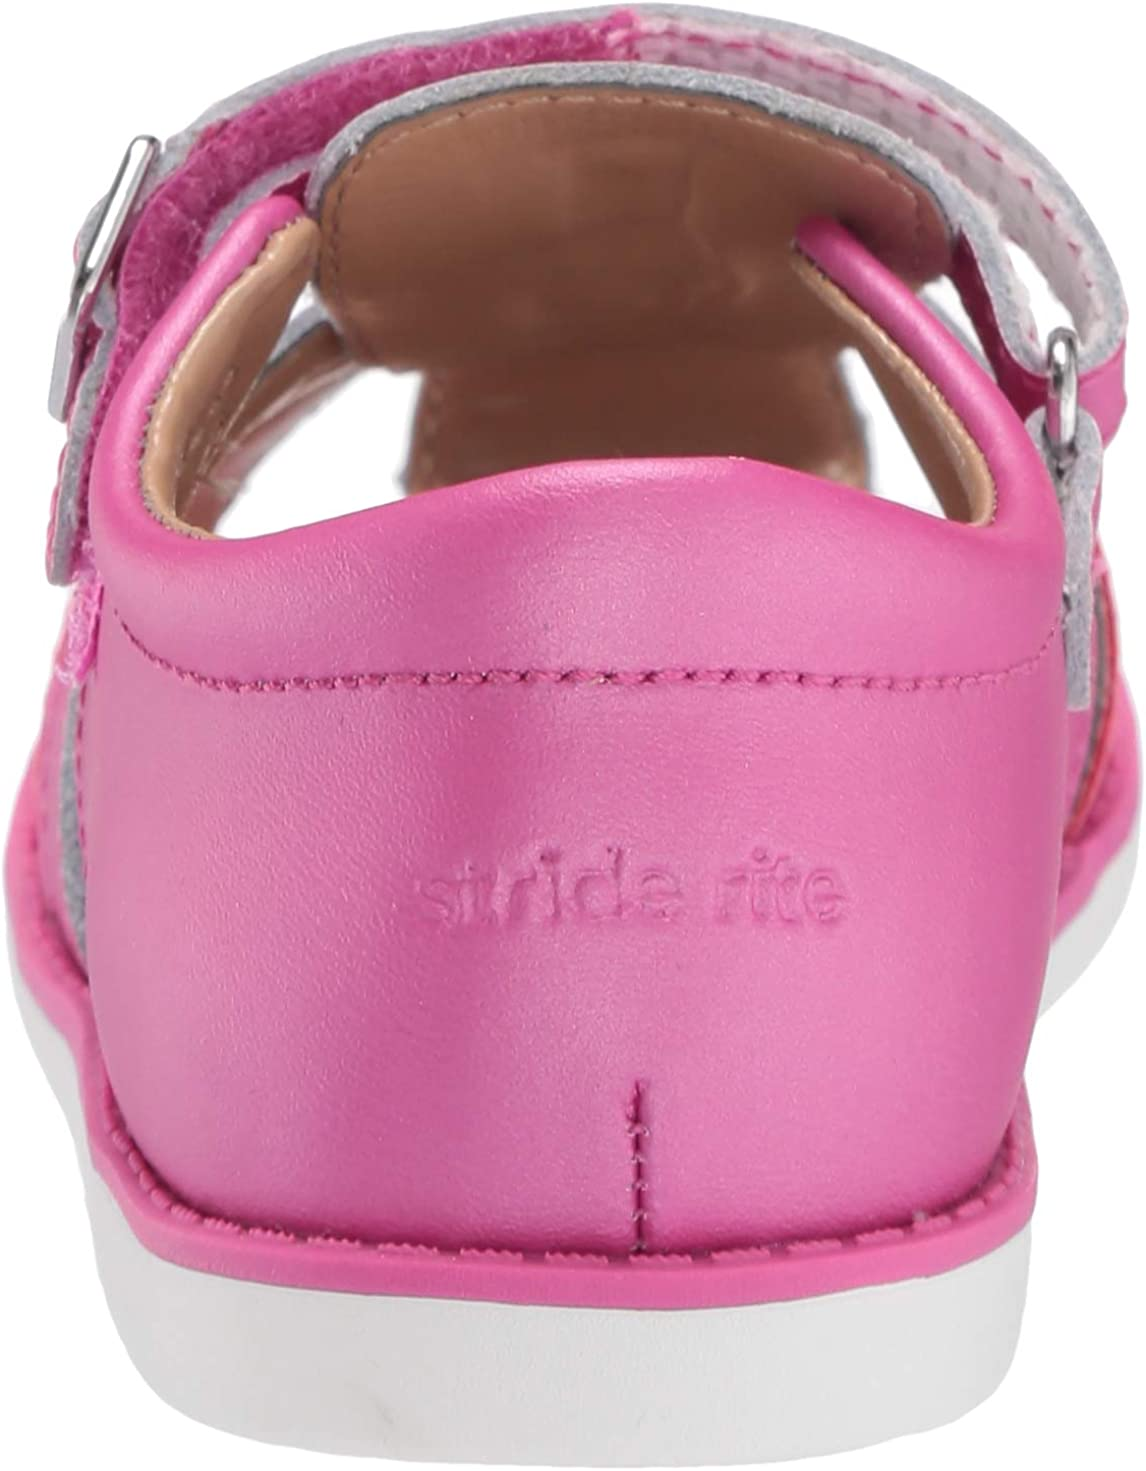 Stride Rite Baby Girls SR Ella Toddler